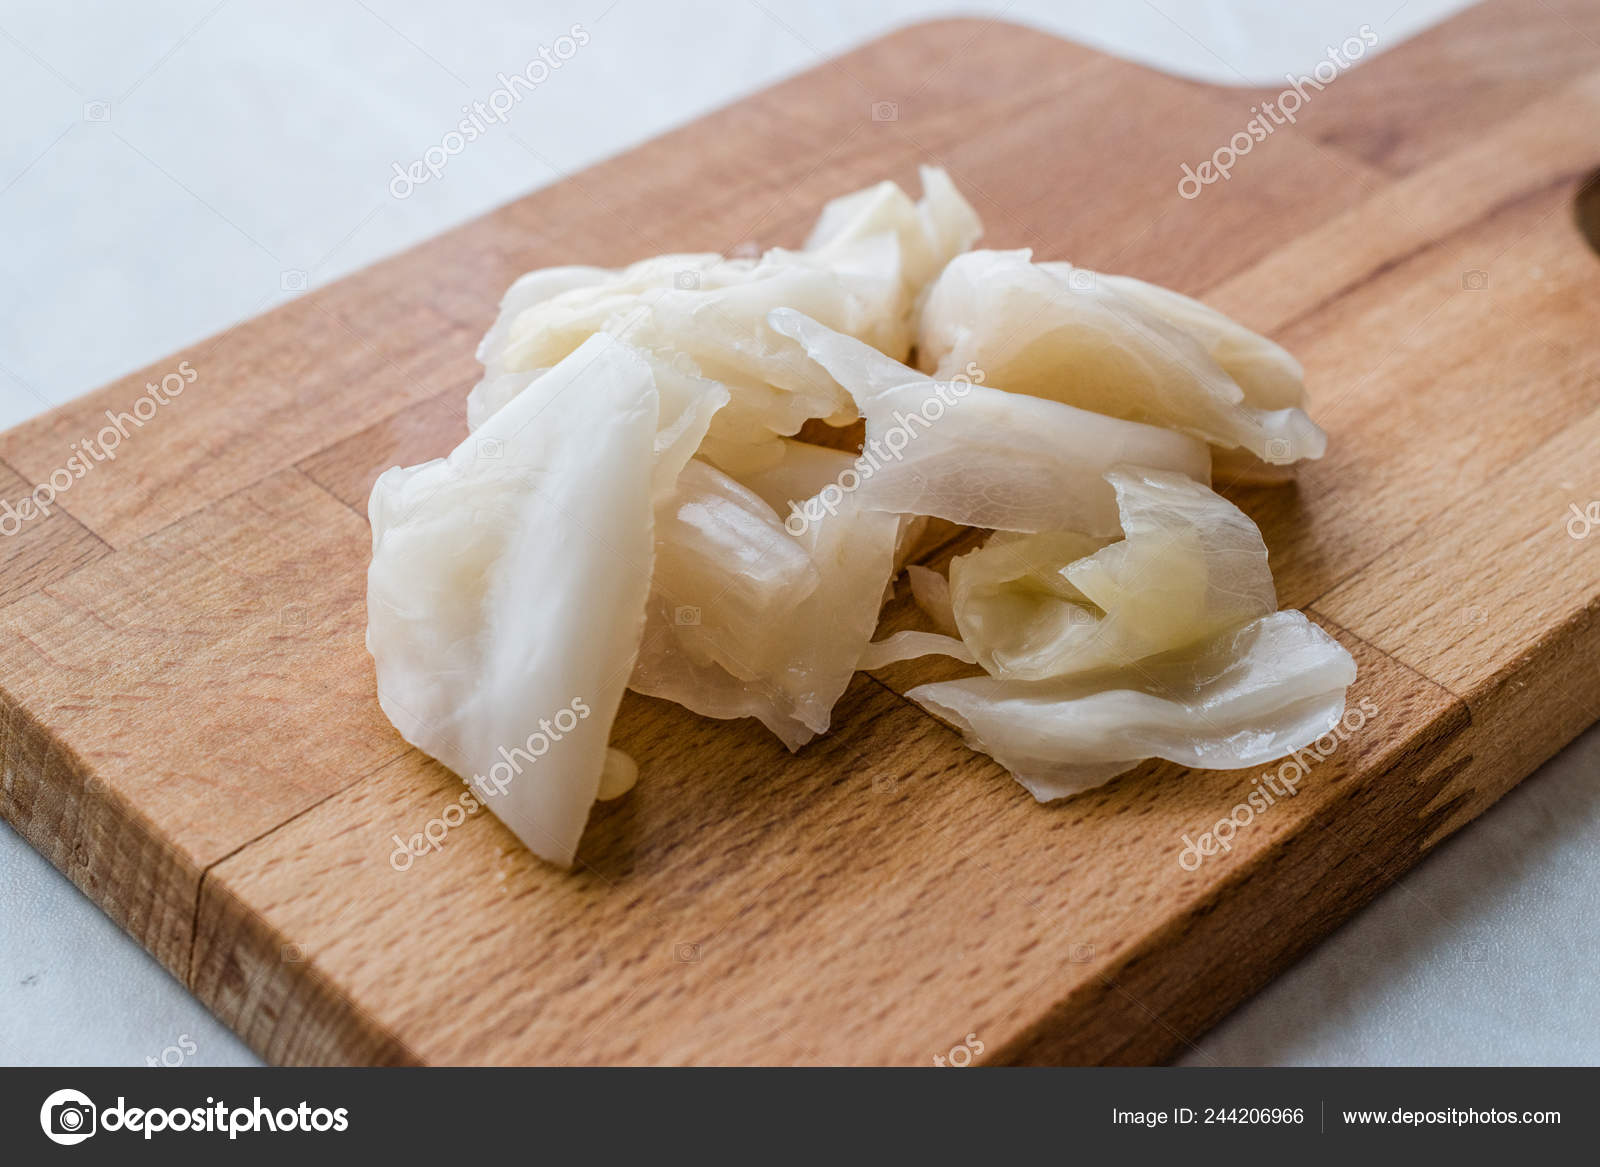 Sushi Ginger Sweet Pickled Ginger Japanese Food Traditional Food Stock Photo Image By C Alp Aksoy 244206966